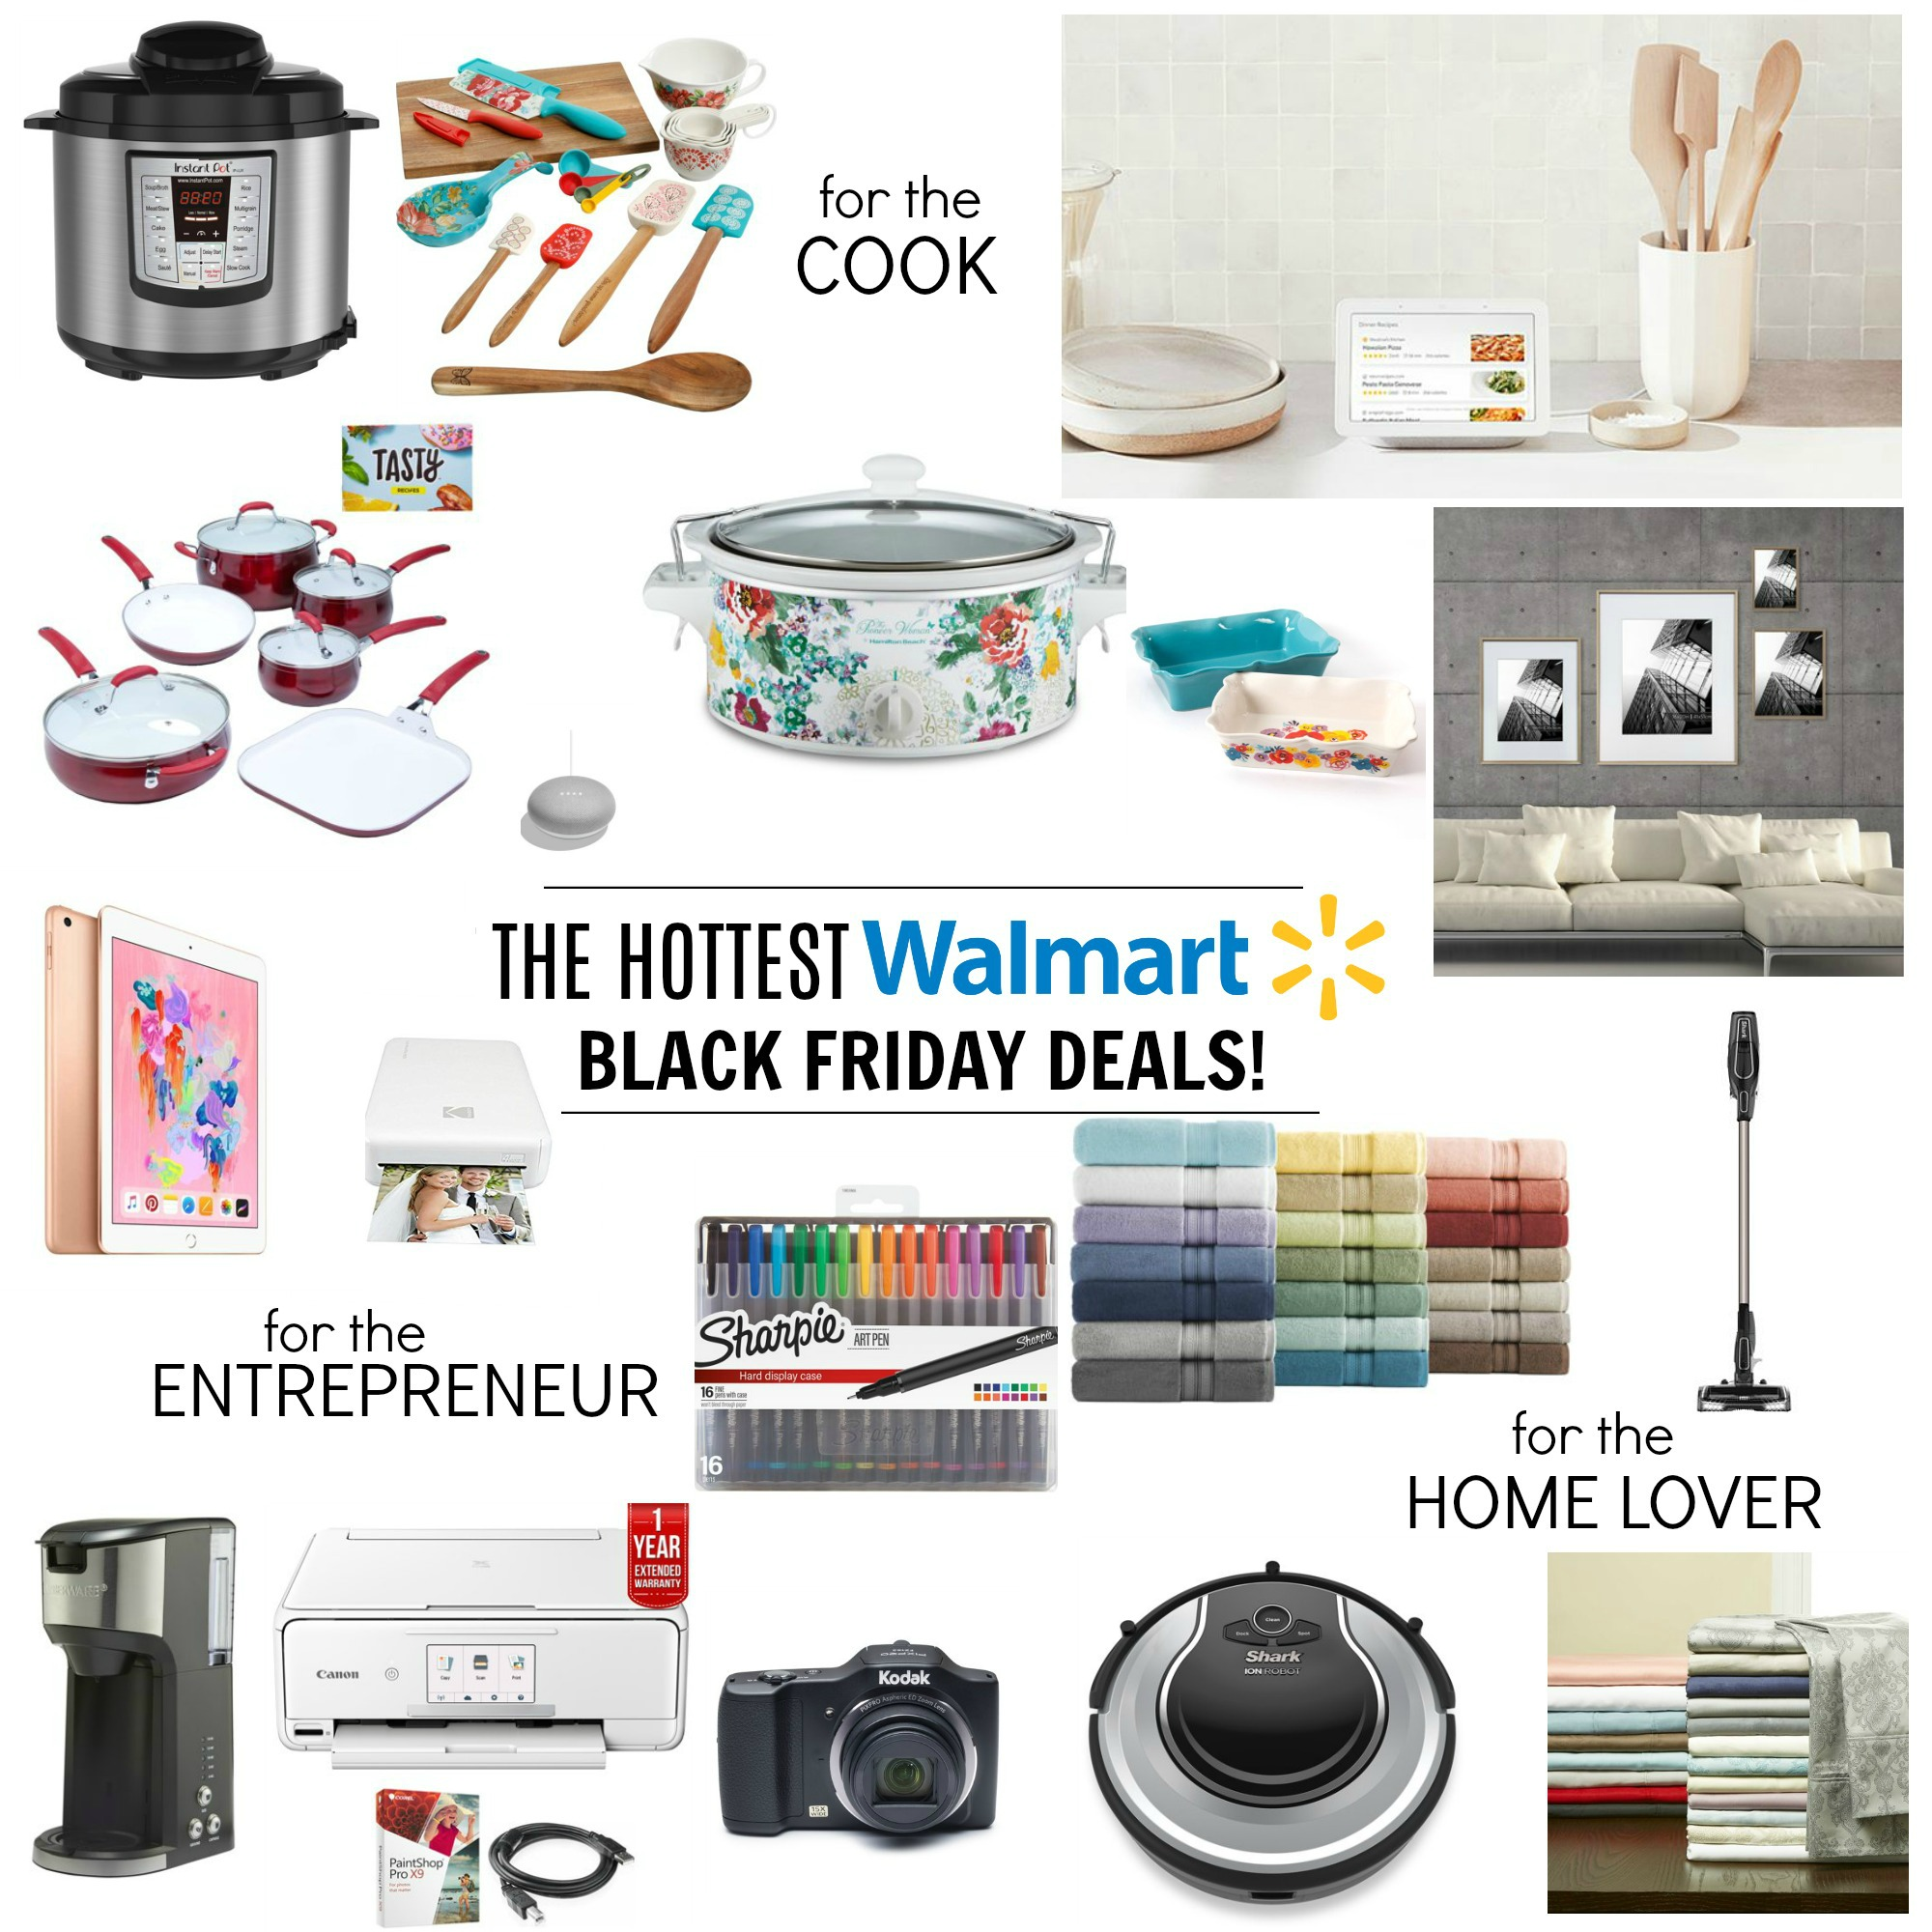 The HOTTEST 2018 Walmart Black Friday Deals – for HER!